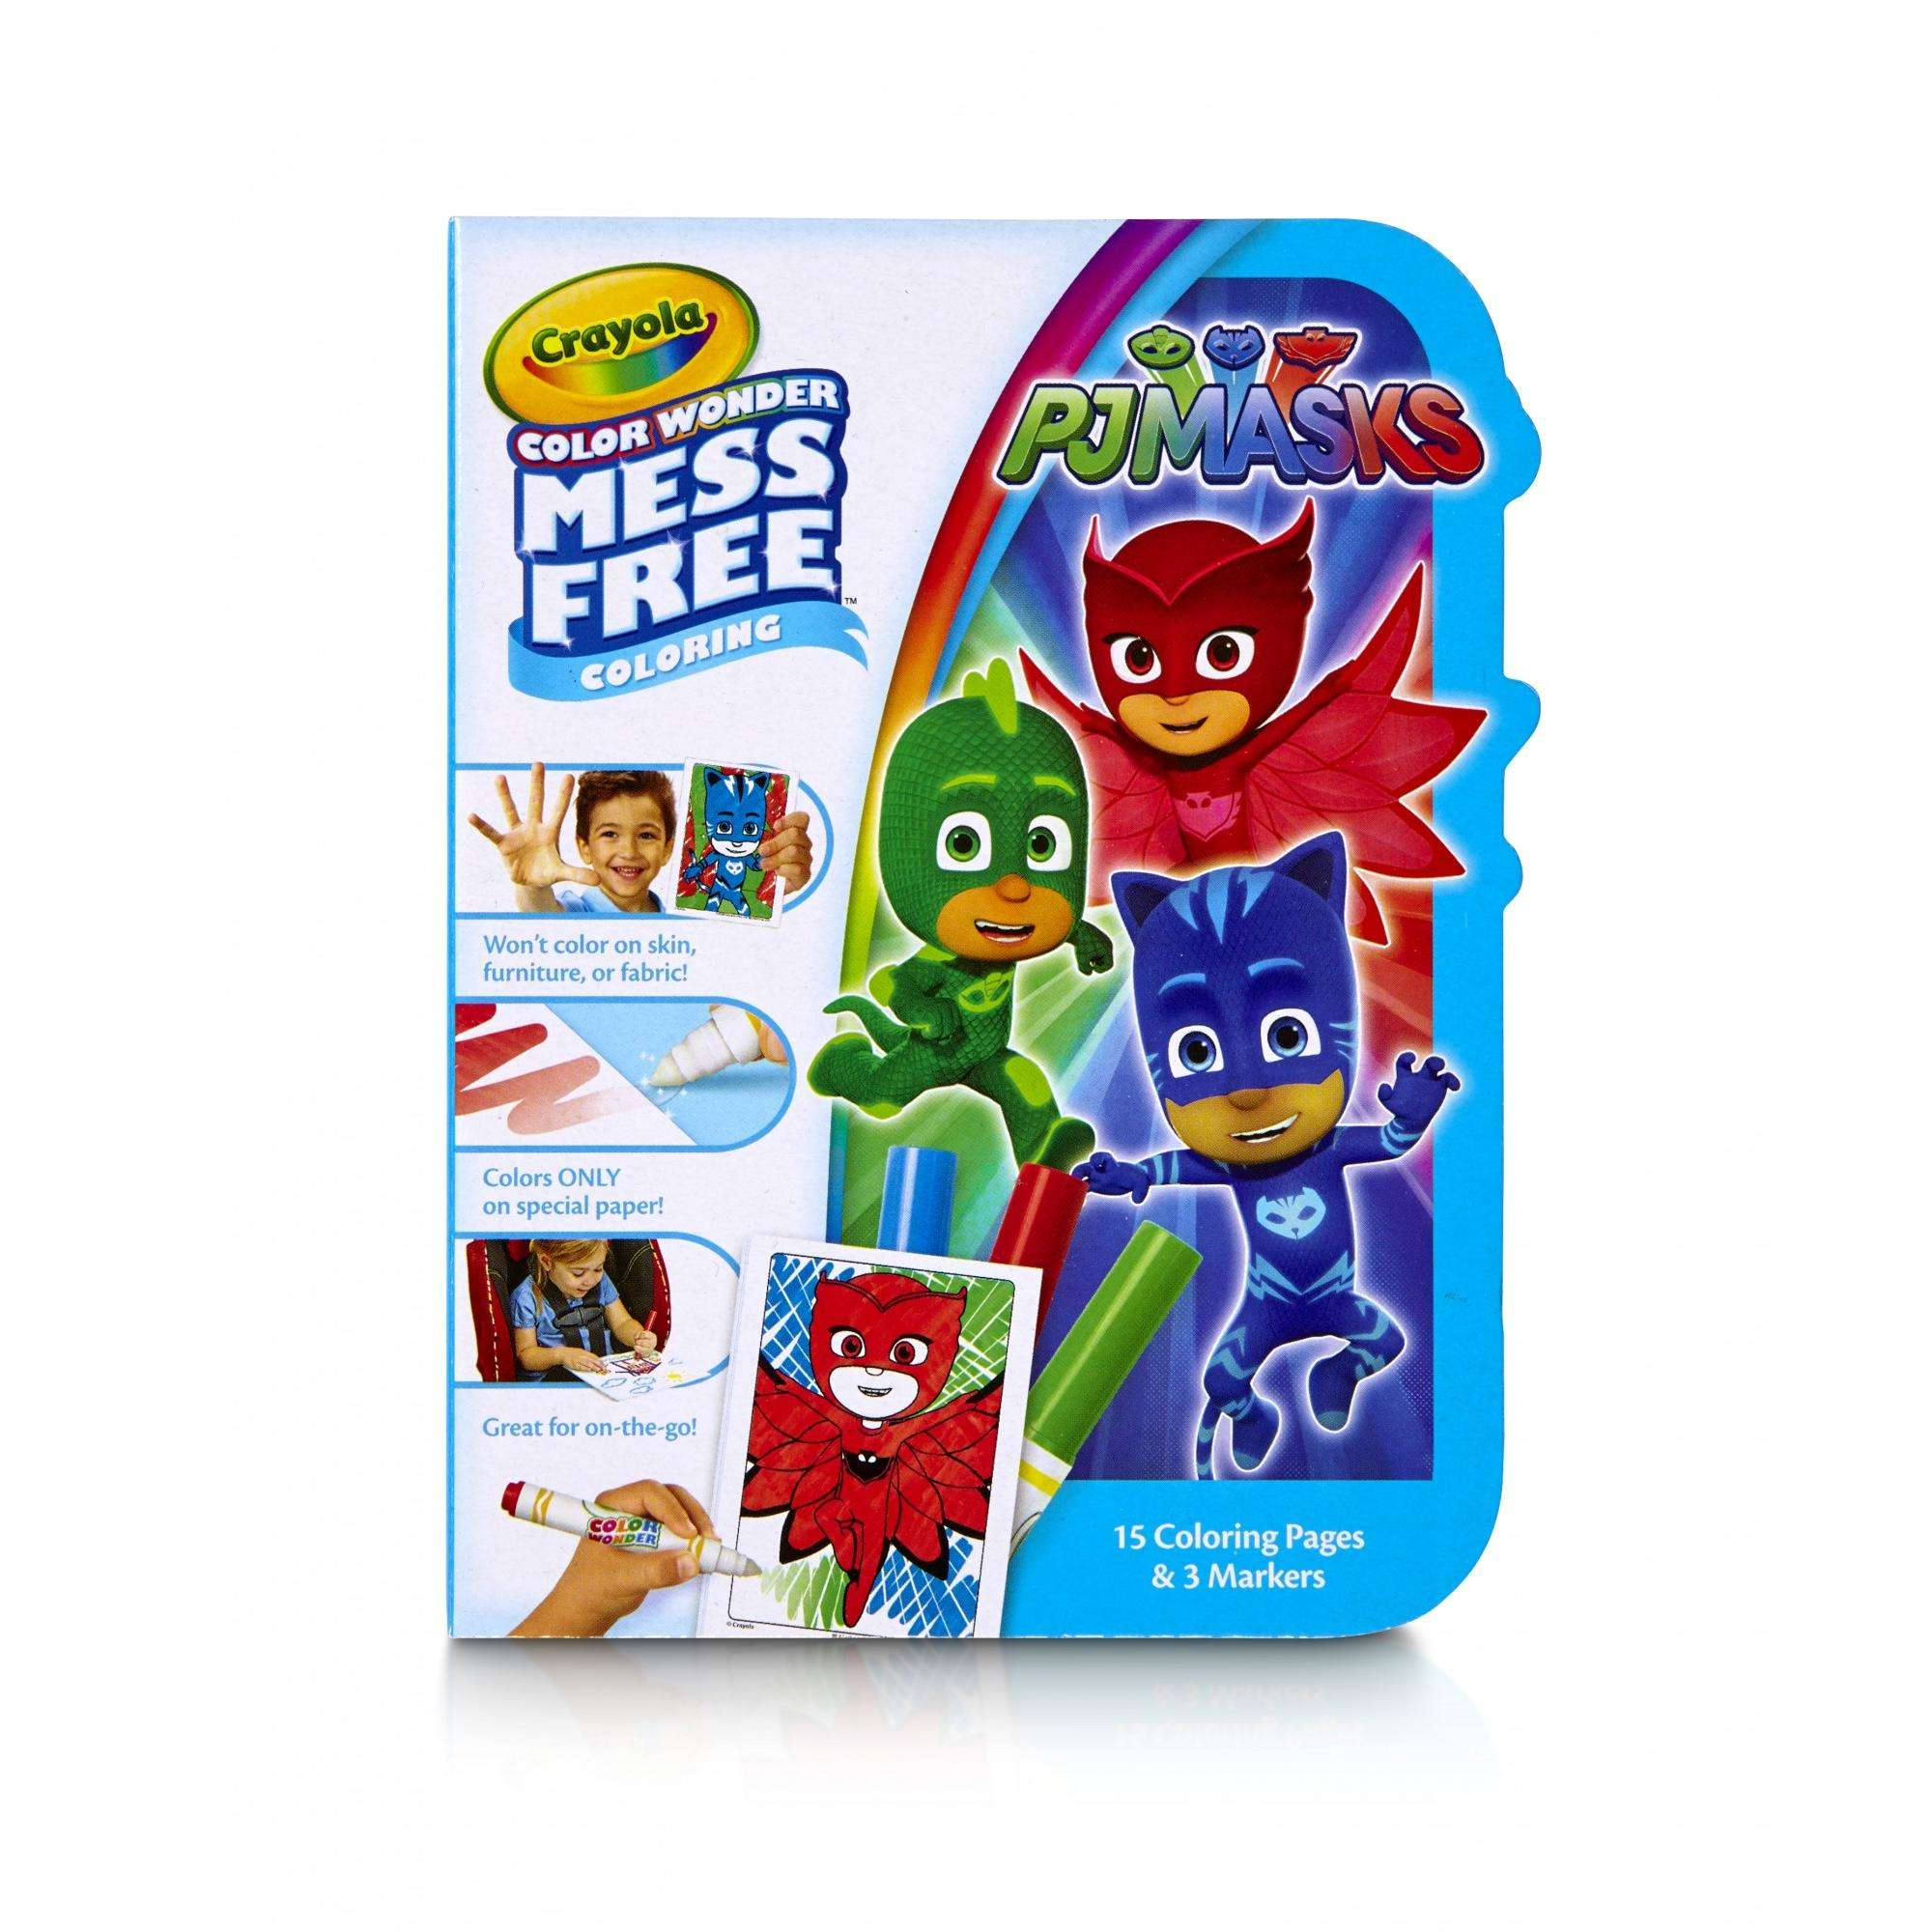 Crayola Color Wonder PJ Masks Color on the Go, 15 Coloring Pages, 3 Markers by Crayola